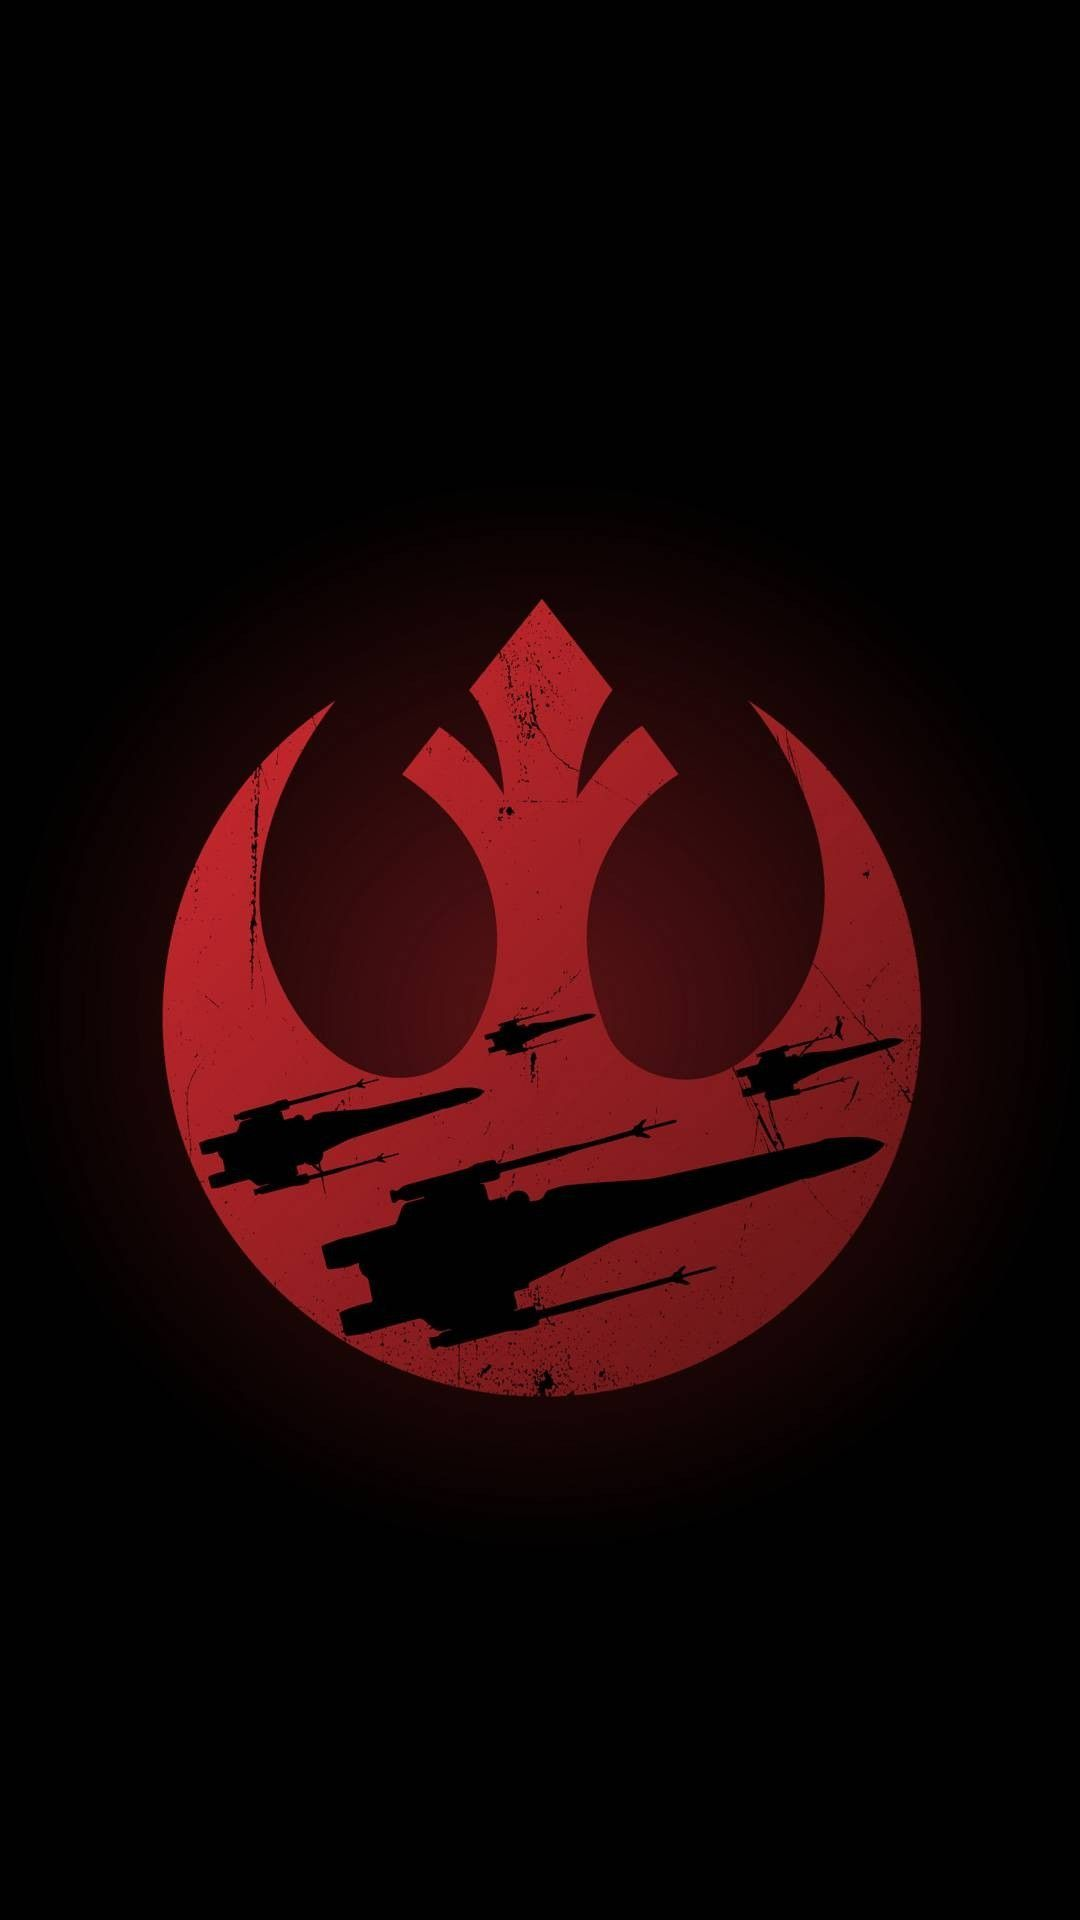 Alliance Star Wars Iphone Wallpapers Top Free Alliance Star Wars Iphone Backgrounds Wallpaperaccess